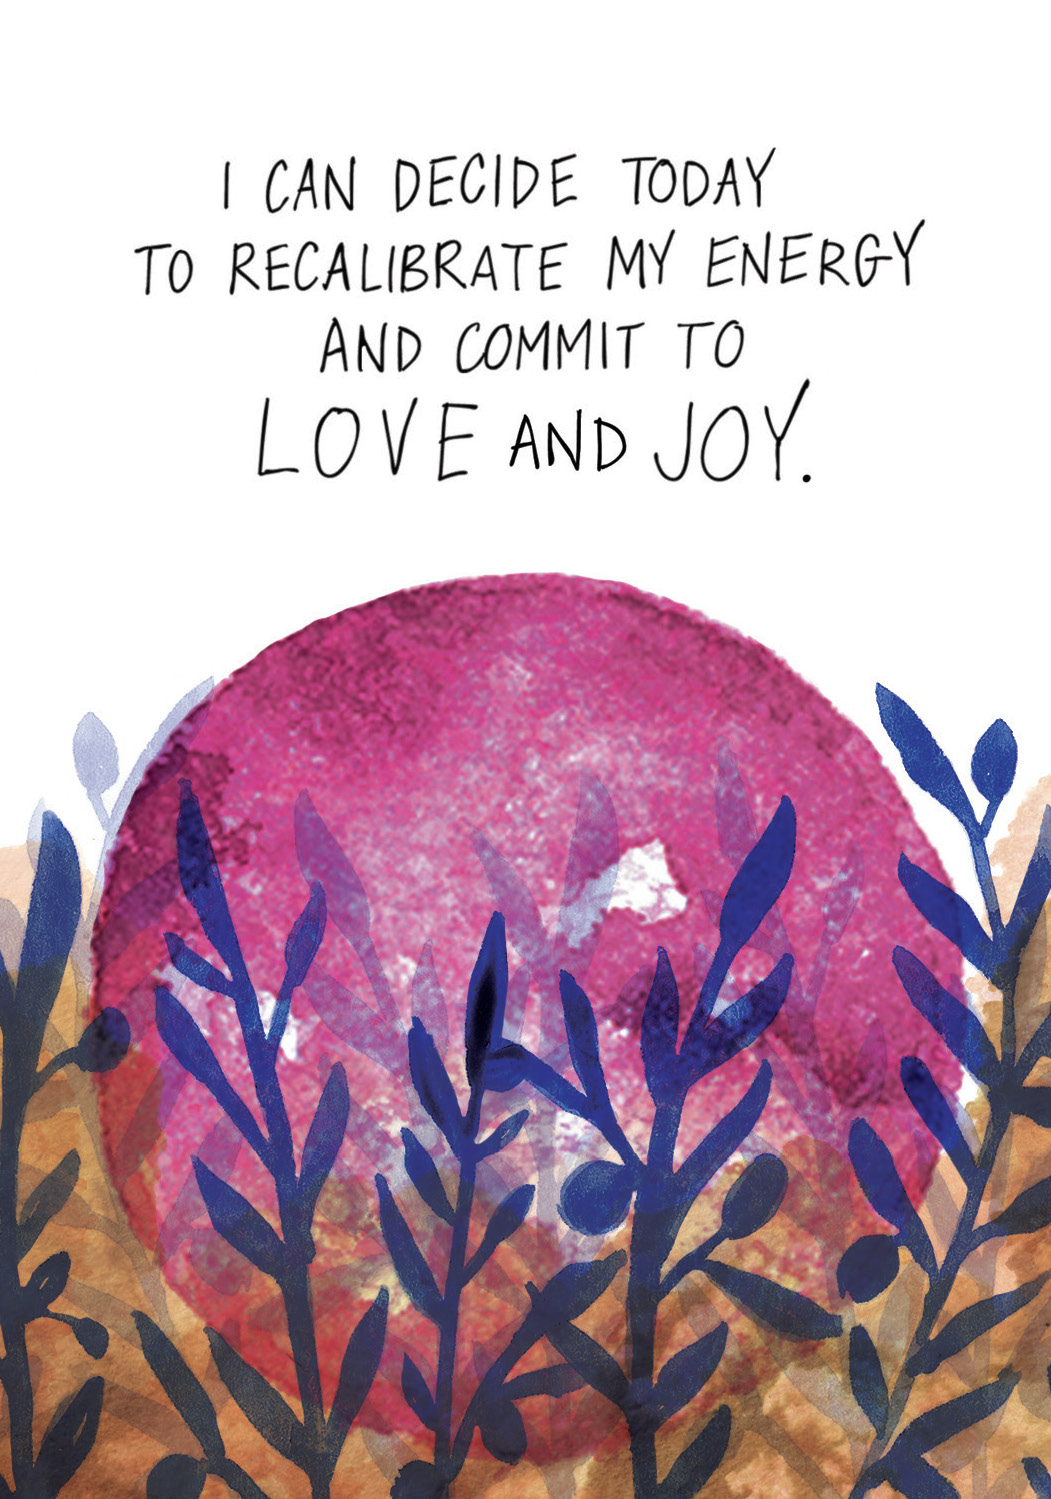 I can decide today to recalibrate my energy and commit to love and joy | Super Attractor deck